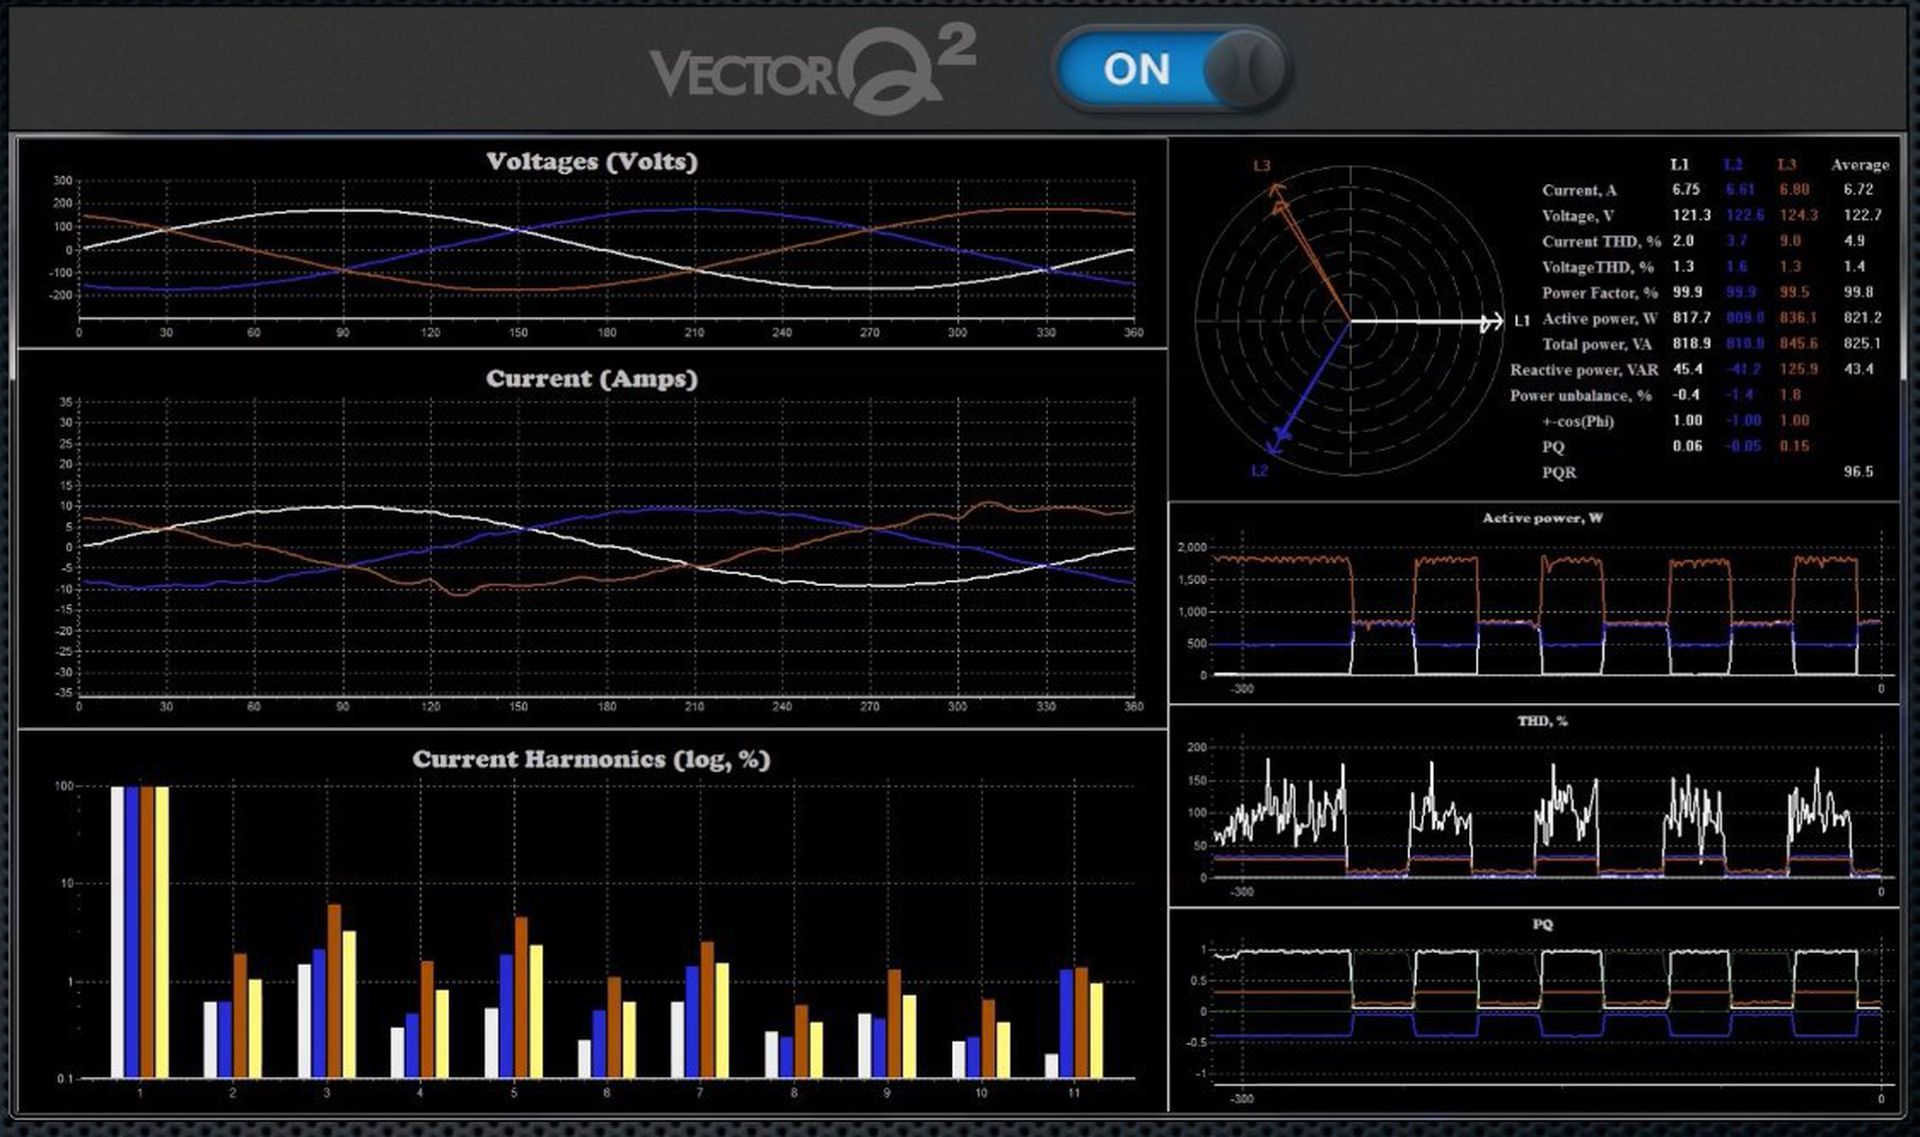 current harmonic compensation and power factor docx Following modes active power support mode, reactive power support mode, renewable intermittency smoothing mode, sag/swell compensation mode, and ucap charge mode.